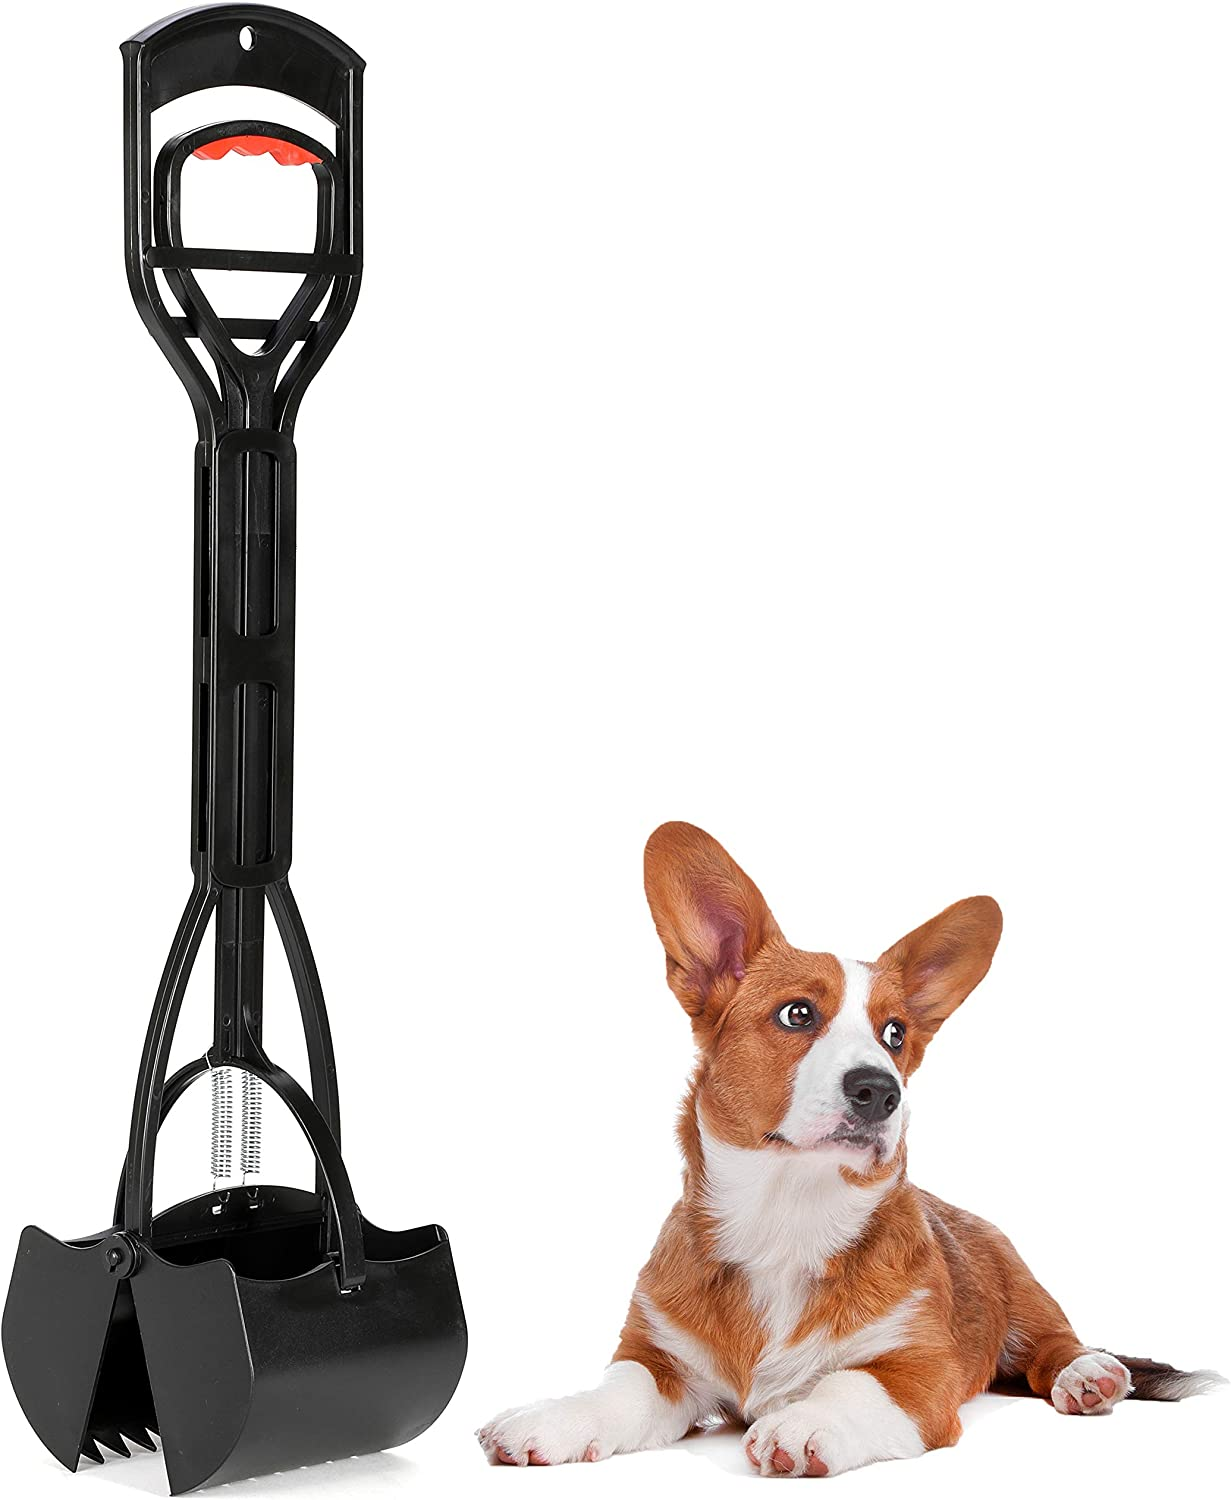 Dogit Waste Scoop, Dog Pooper Scooper & Rake Combo for Easy Grass & Pavement Pickup